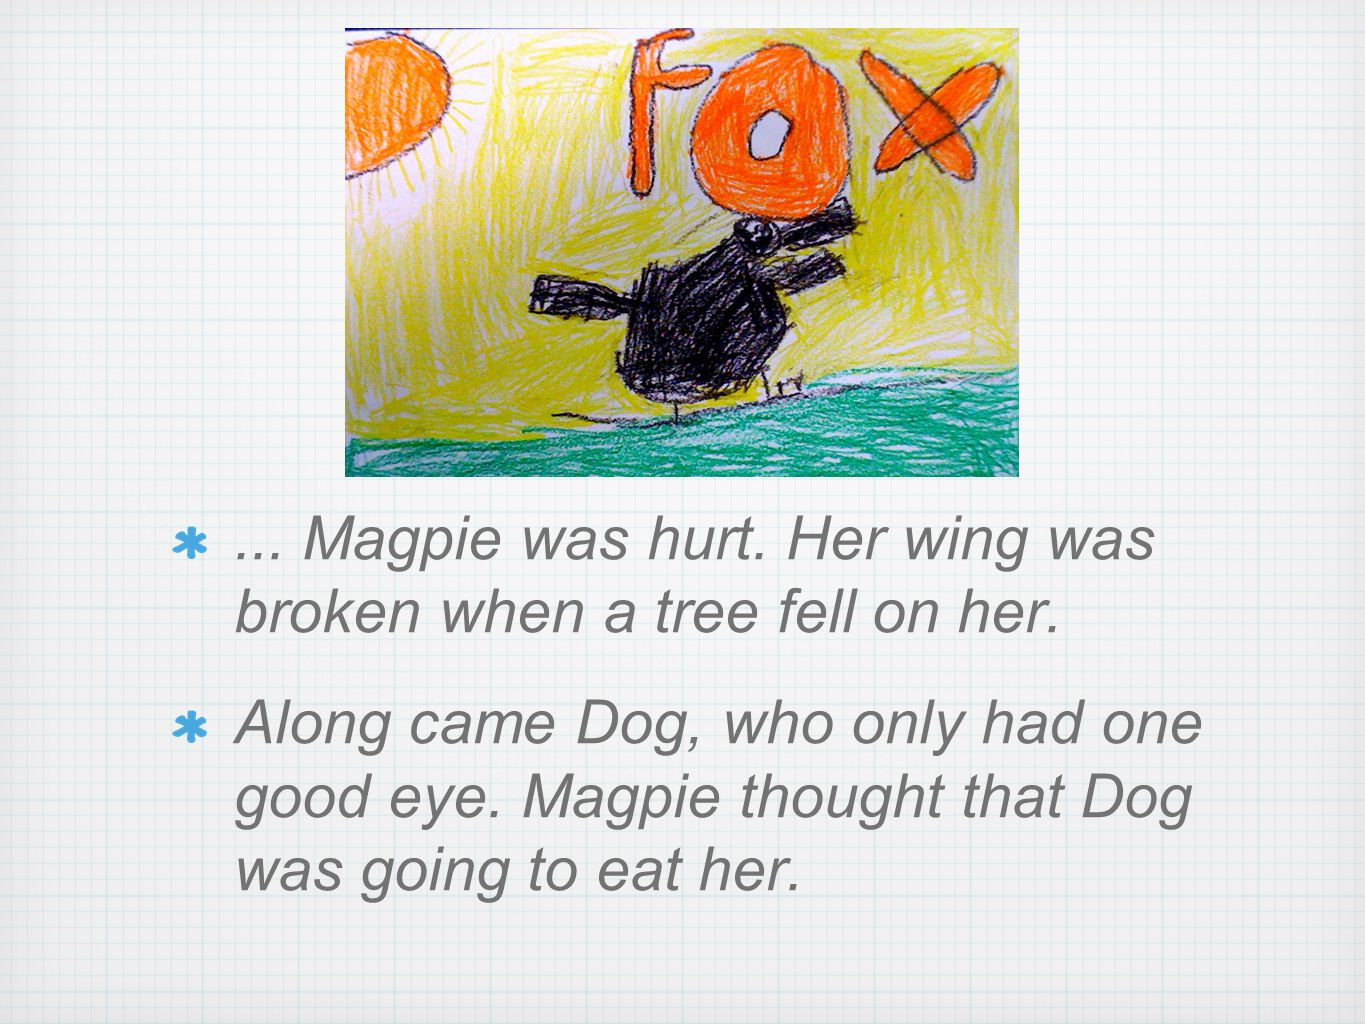 x... Magpie was hurt. Her wing was broken when a tree fell on her.